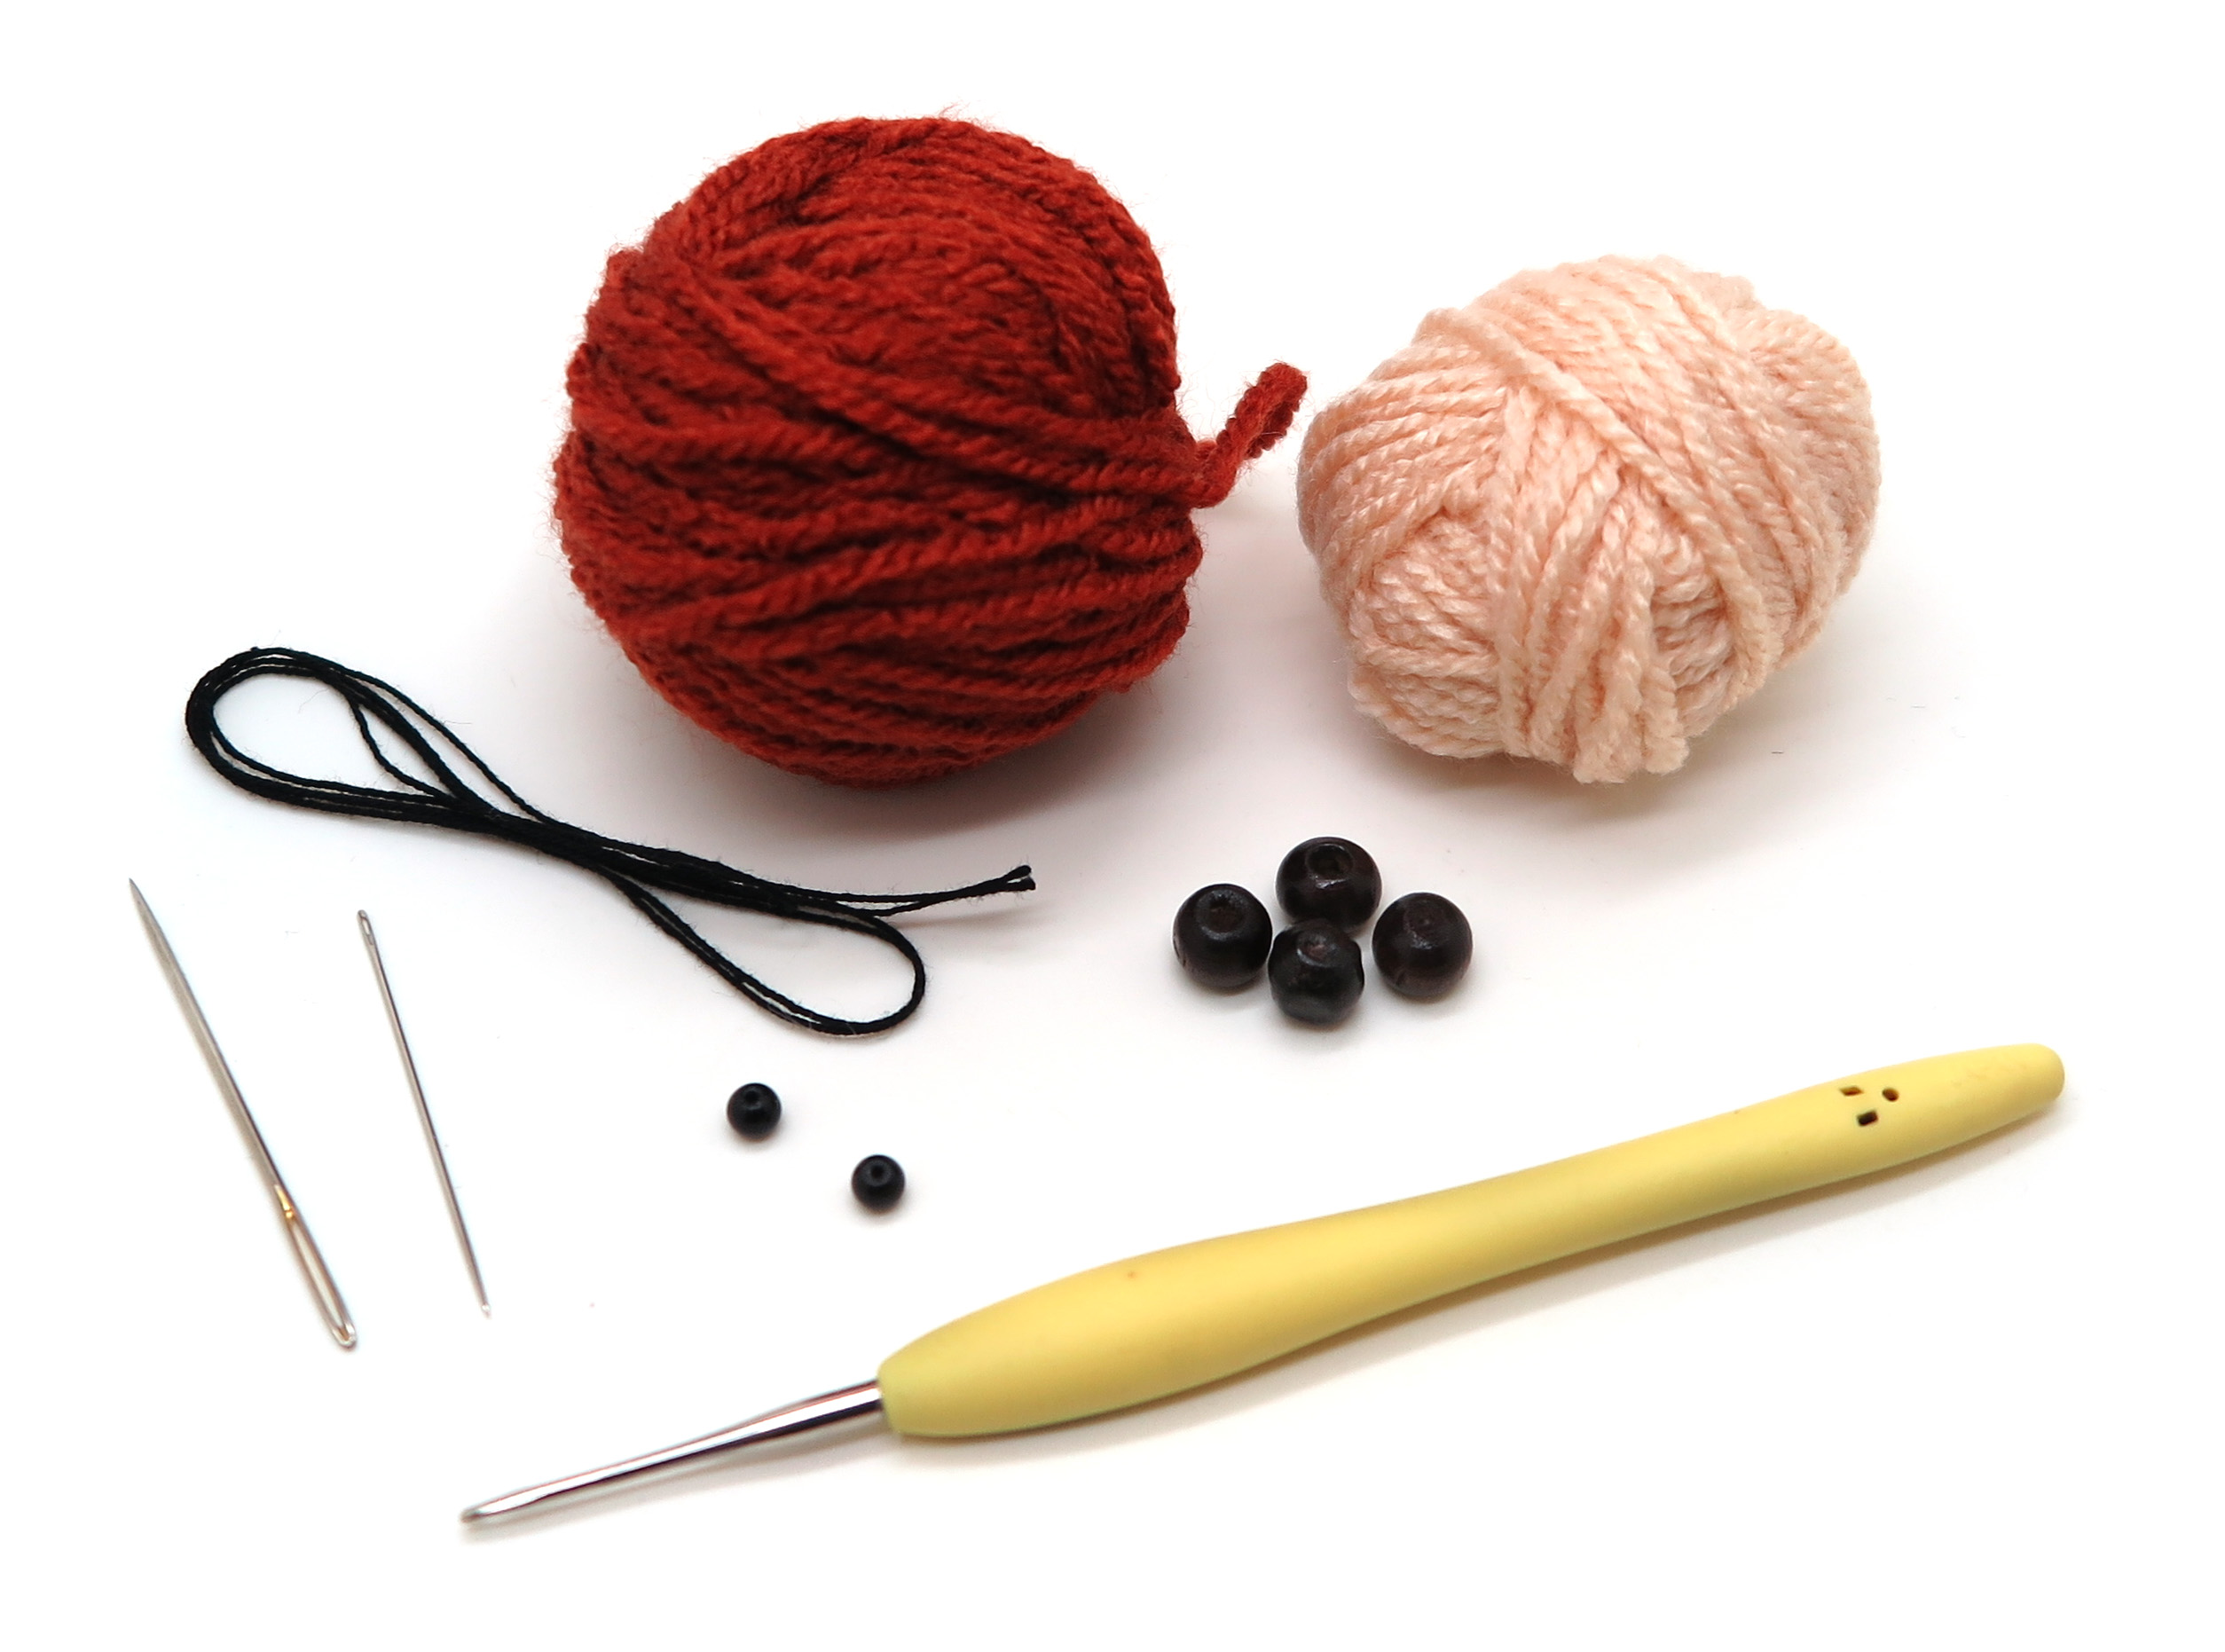 materials for crocheting